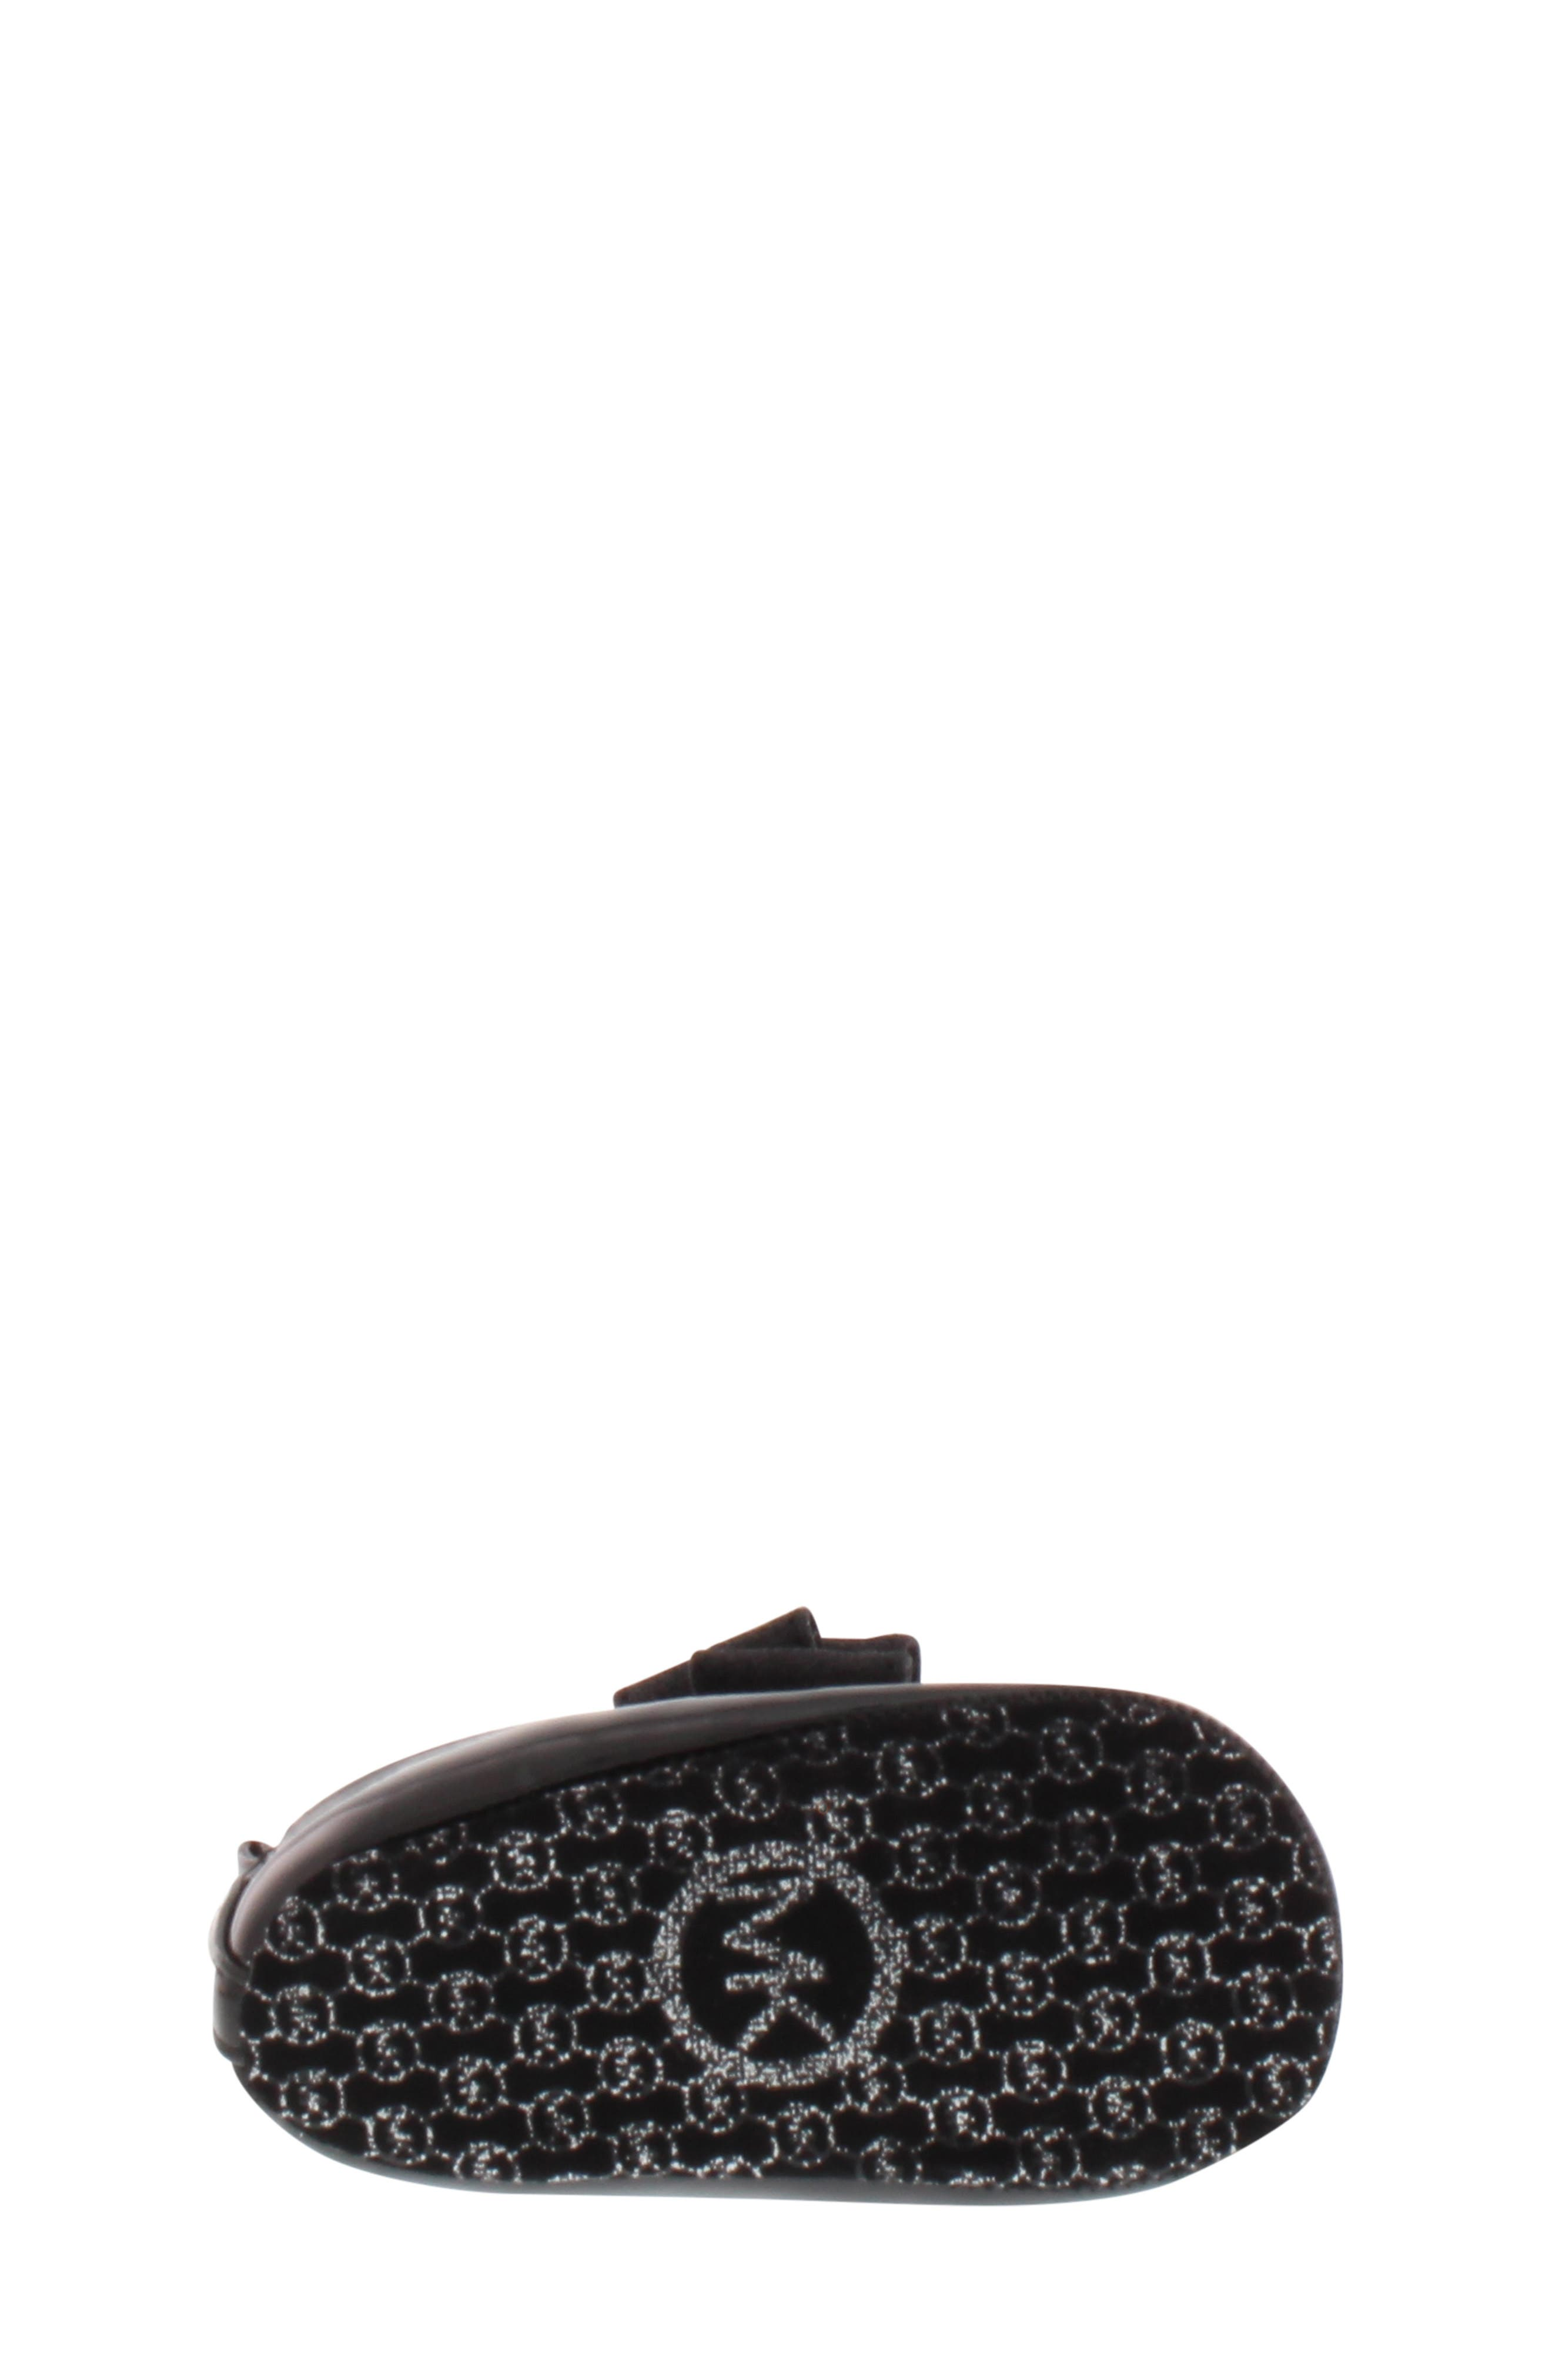 MICHAEL MICHAEL KORS, Baby Day Glittery Crib Flat, Alternate thumbnail 6, color, BLACK/ BLACK GLITTER